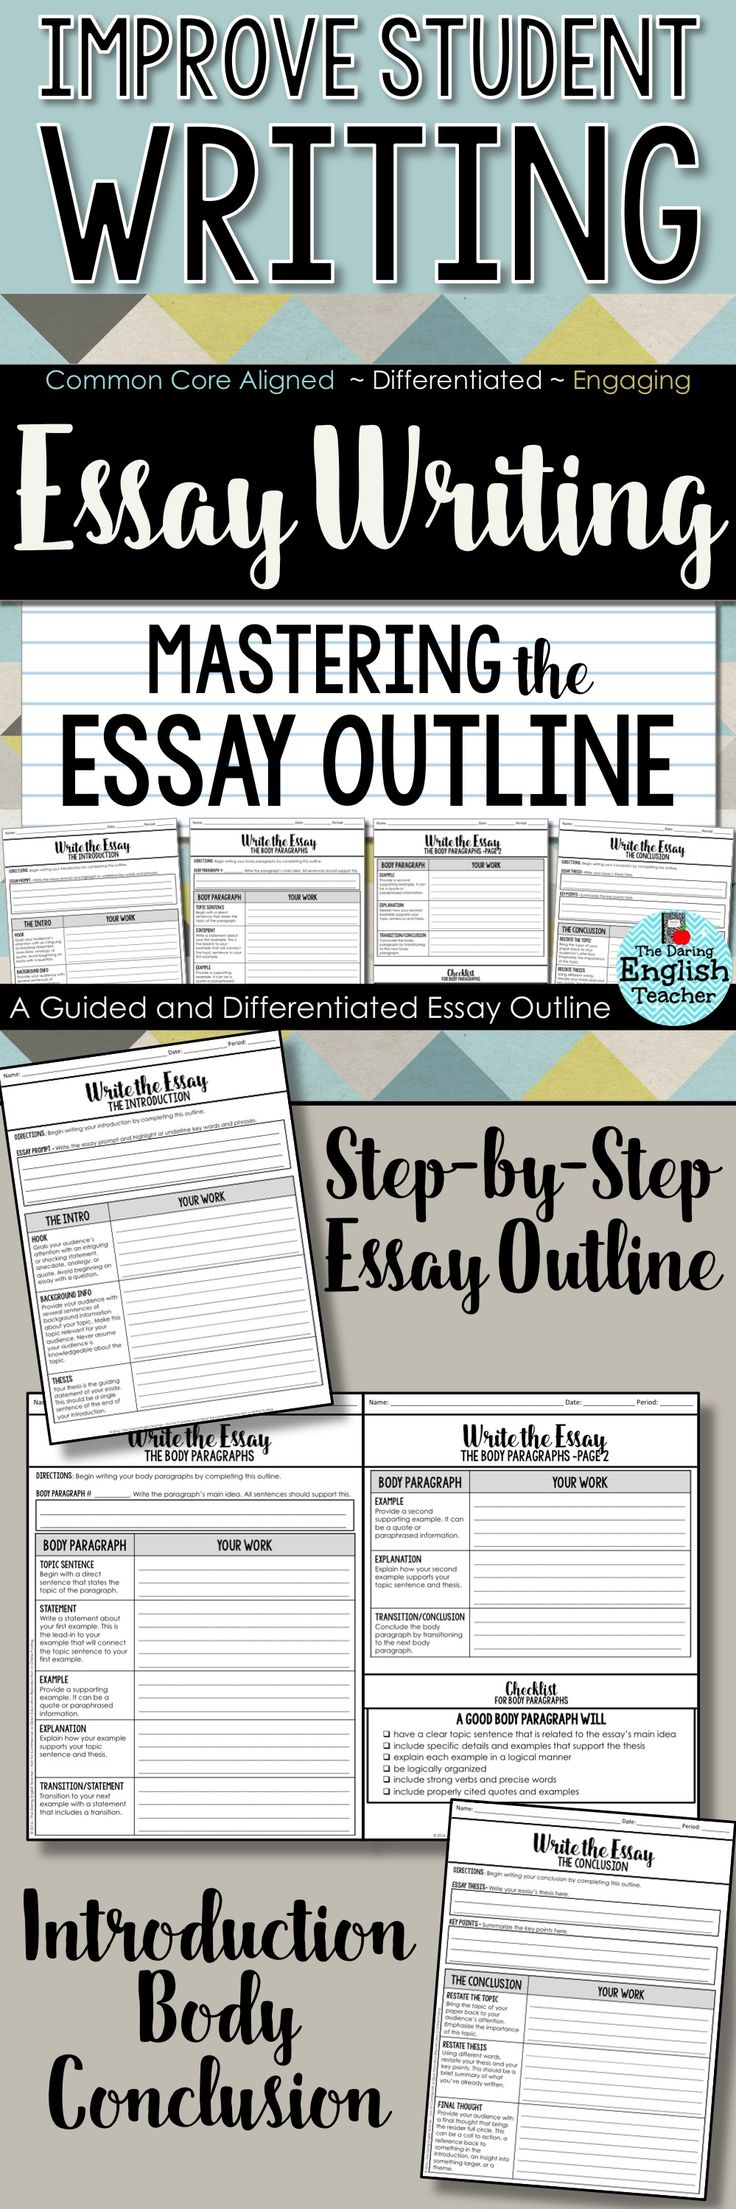 best ideas about essay writing essay writing essay writing mastering the essay outline guided instructions writing masteringteaching